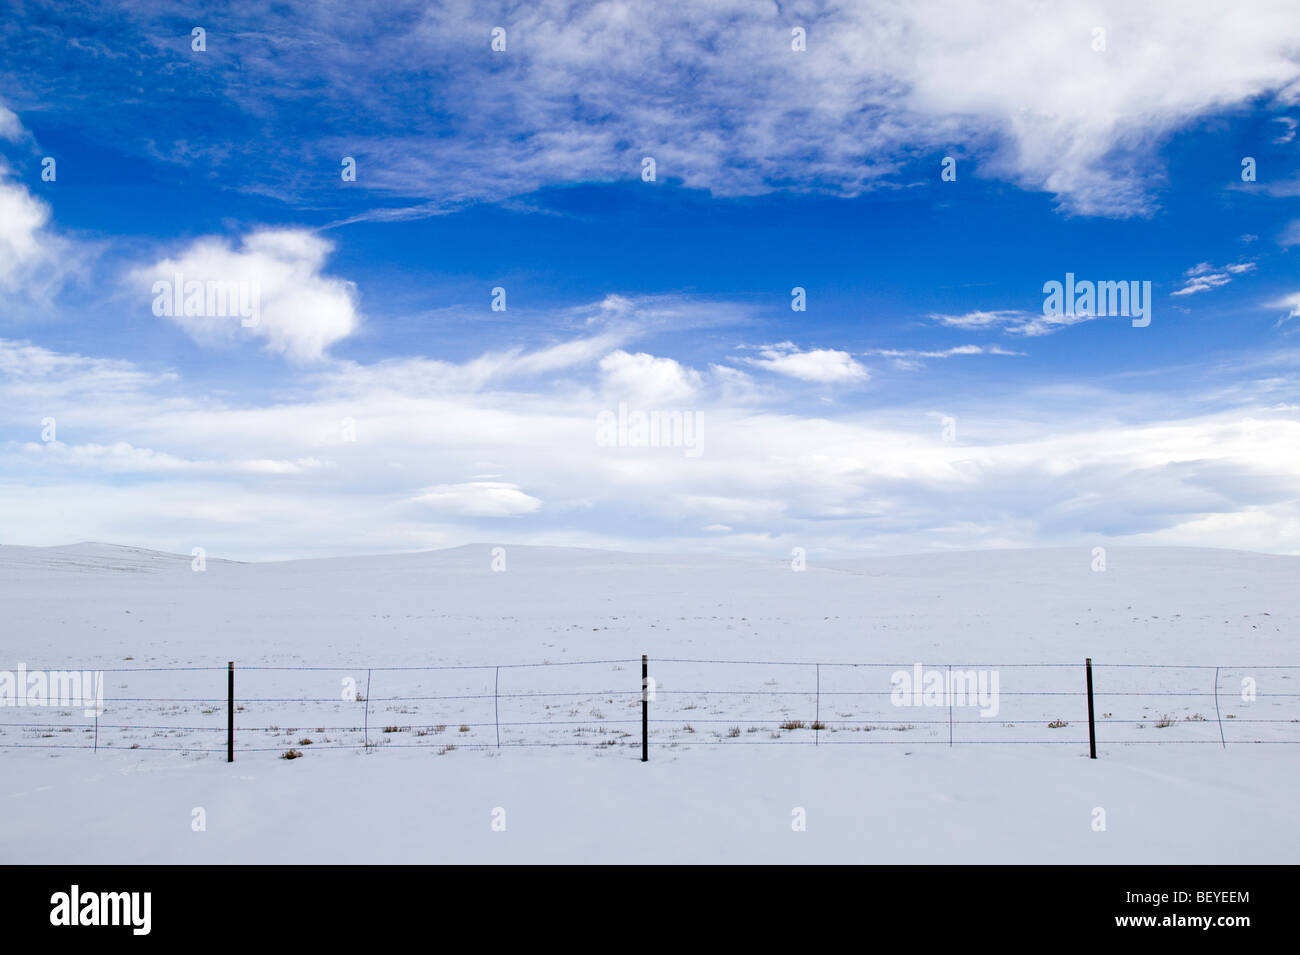 Winter landscape of clouds, snow & ranch fence near Fairplay, Colorado, USA - Stock Image